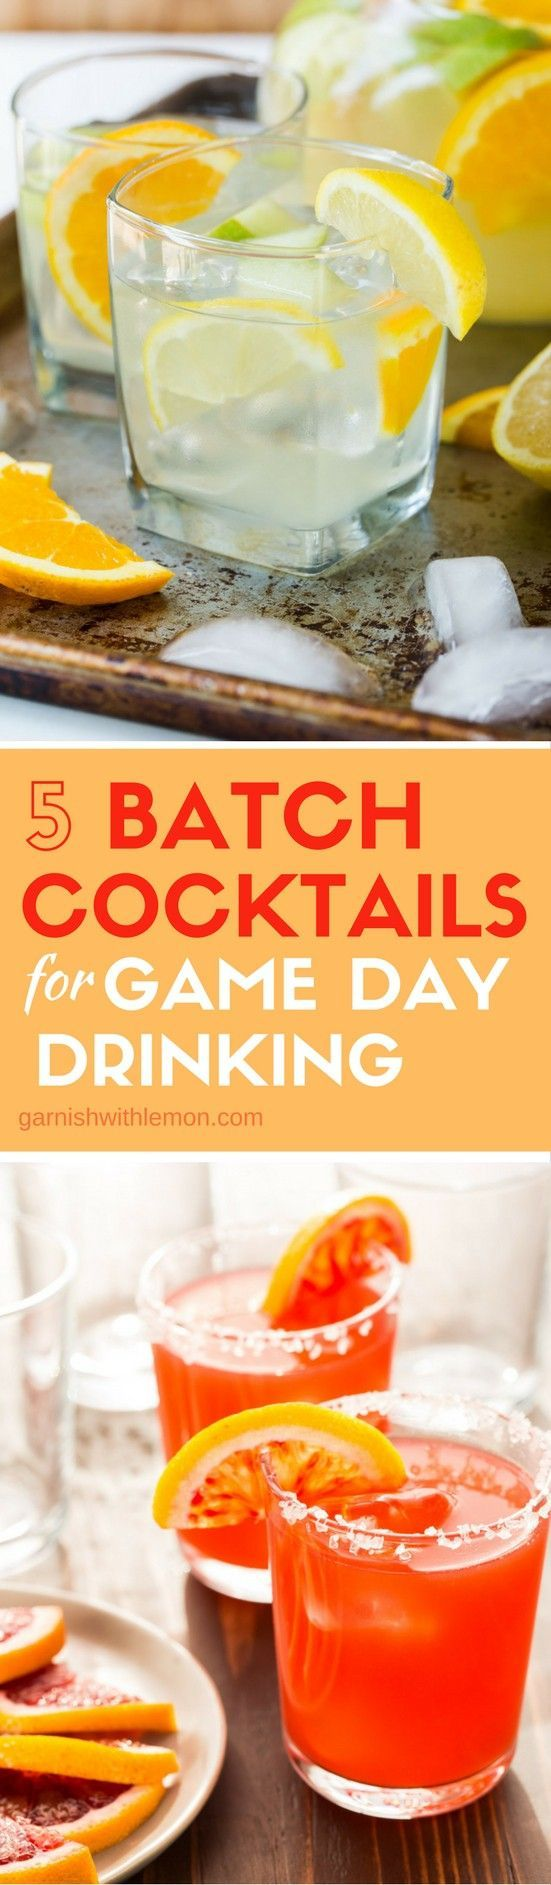 Sports fans are a thirsty crew! Quench everyone's thirst with these 5 Big Batch Cocktails for Game Day Drinking!  #batchcocktails #pitcherdrinks #cocktails #drinks